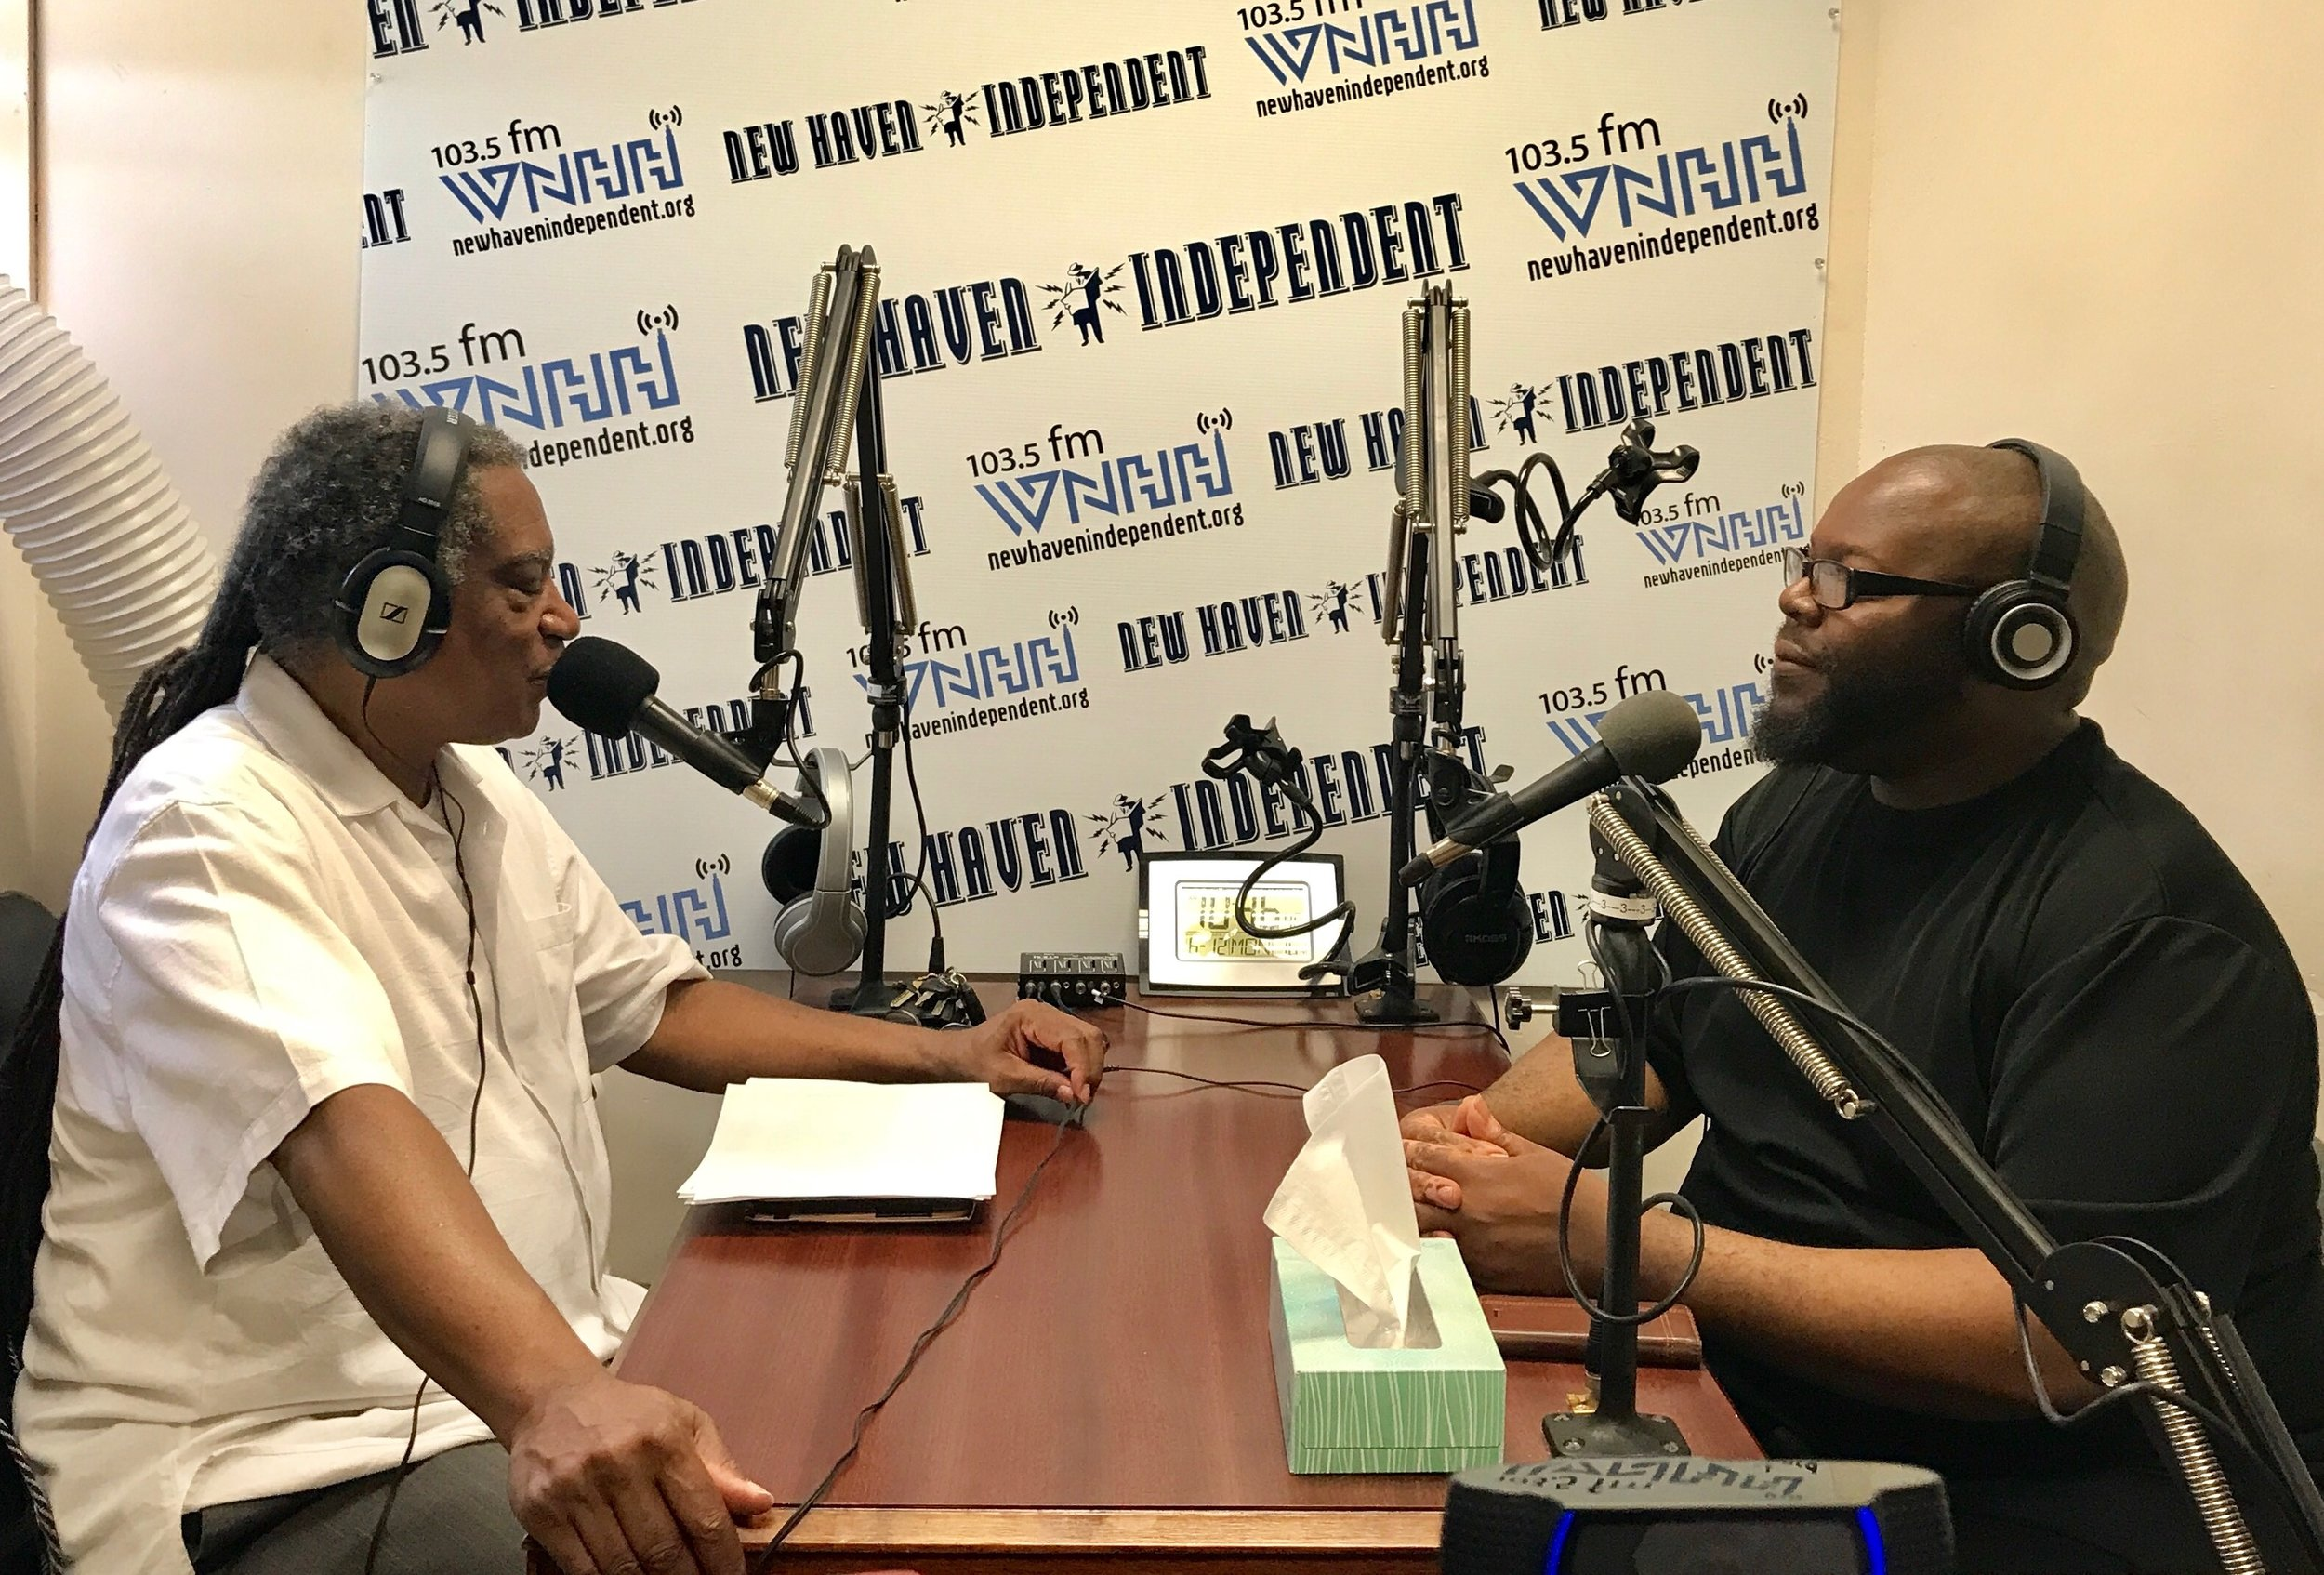 """Today on """"The Tom Ficklin Show"""" host Tom Ficklin talks with Rev. Brian Bellamy from the Friendship Missionary Baptist Church. www.friendshipmbc.net/welcome.html"""